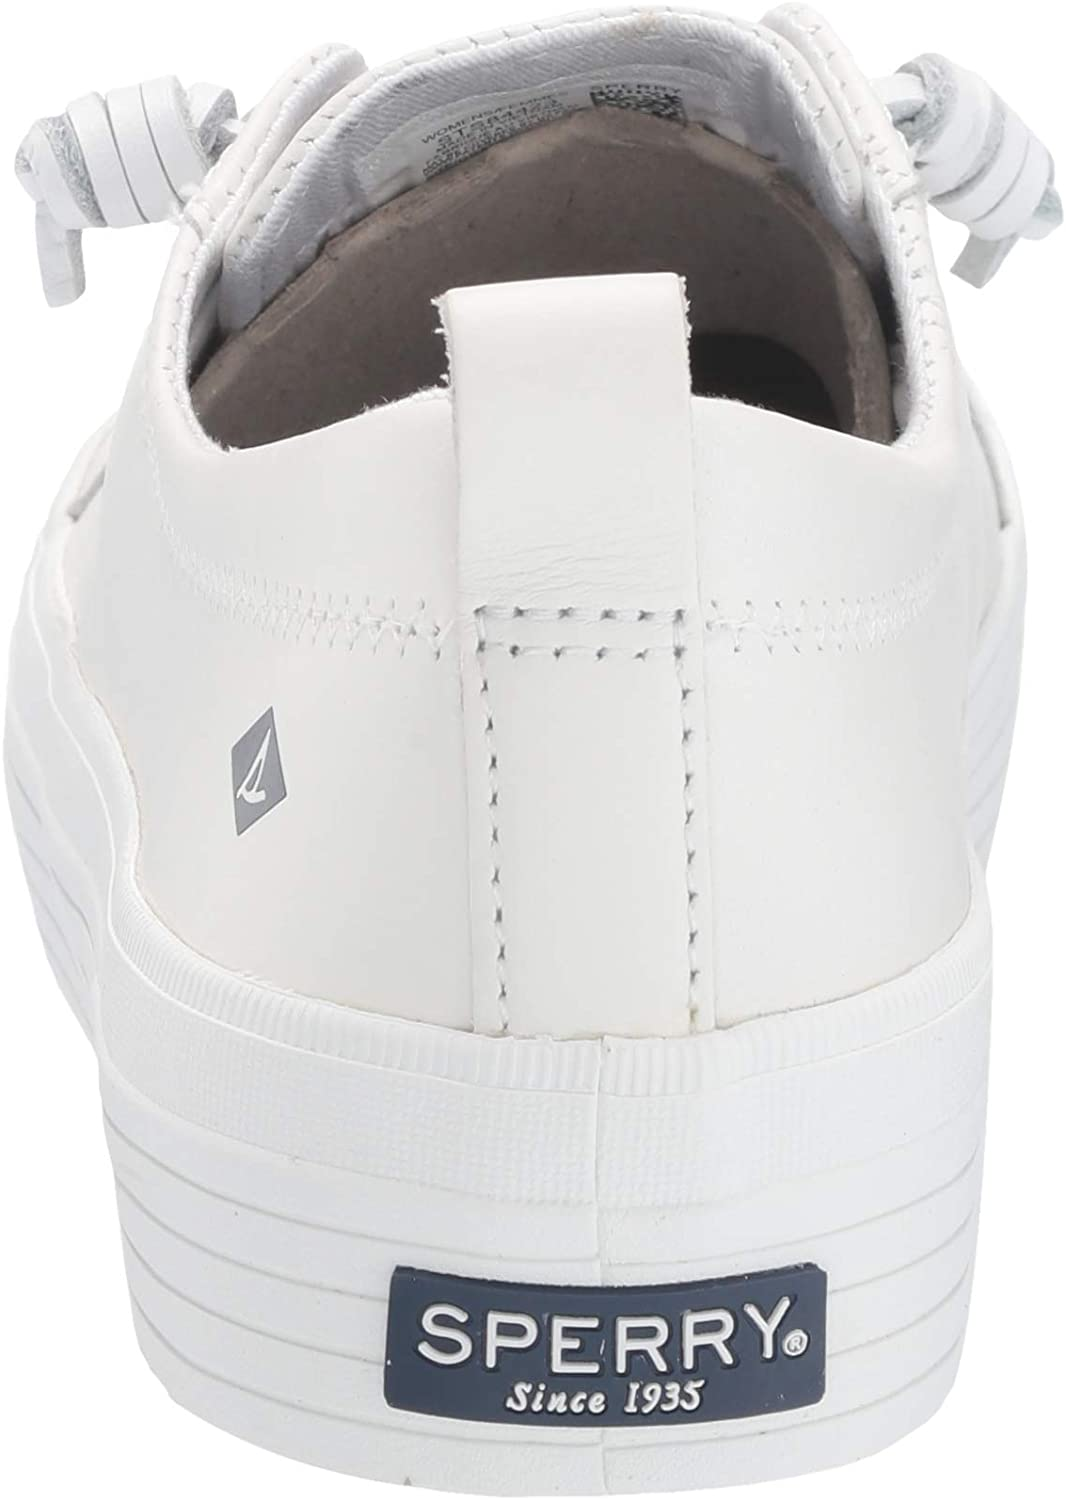 Sperry Womens Crest Vibe Platform Leather Sneakers